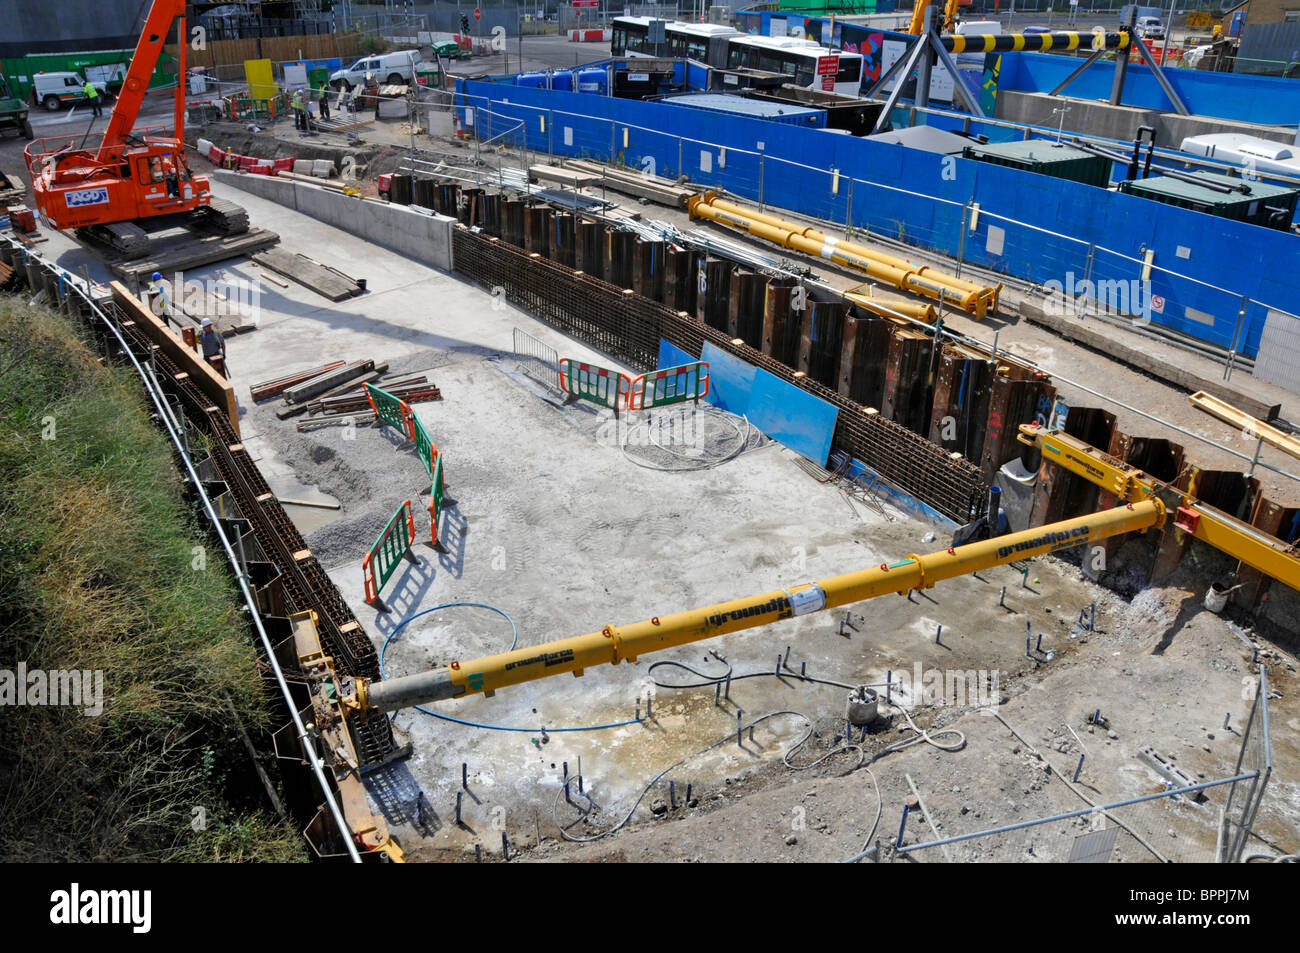 Groundforce hydraulic strut in position for foundation construction work see also Alamy ref BNH1PG - Stock Image